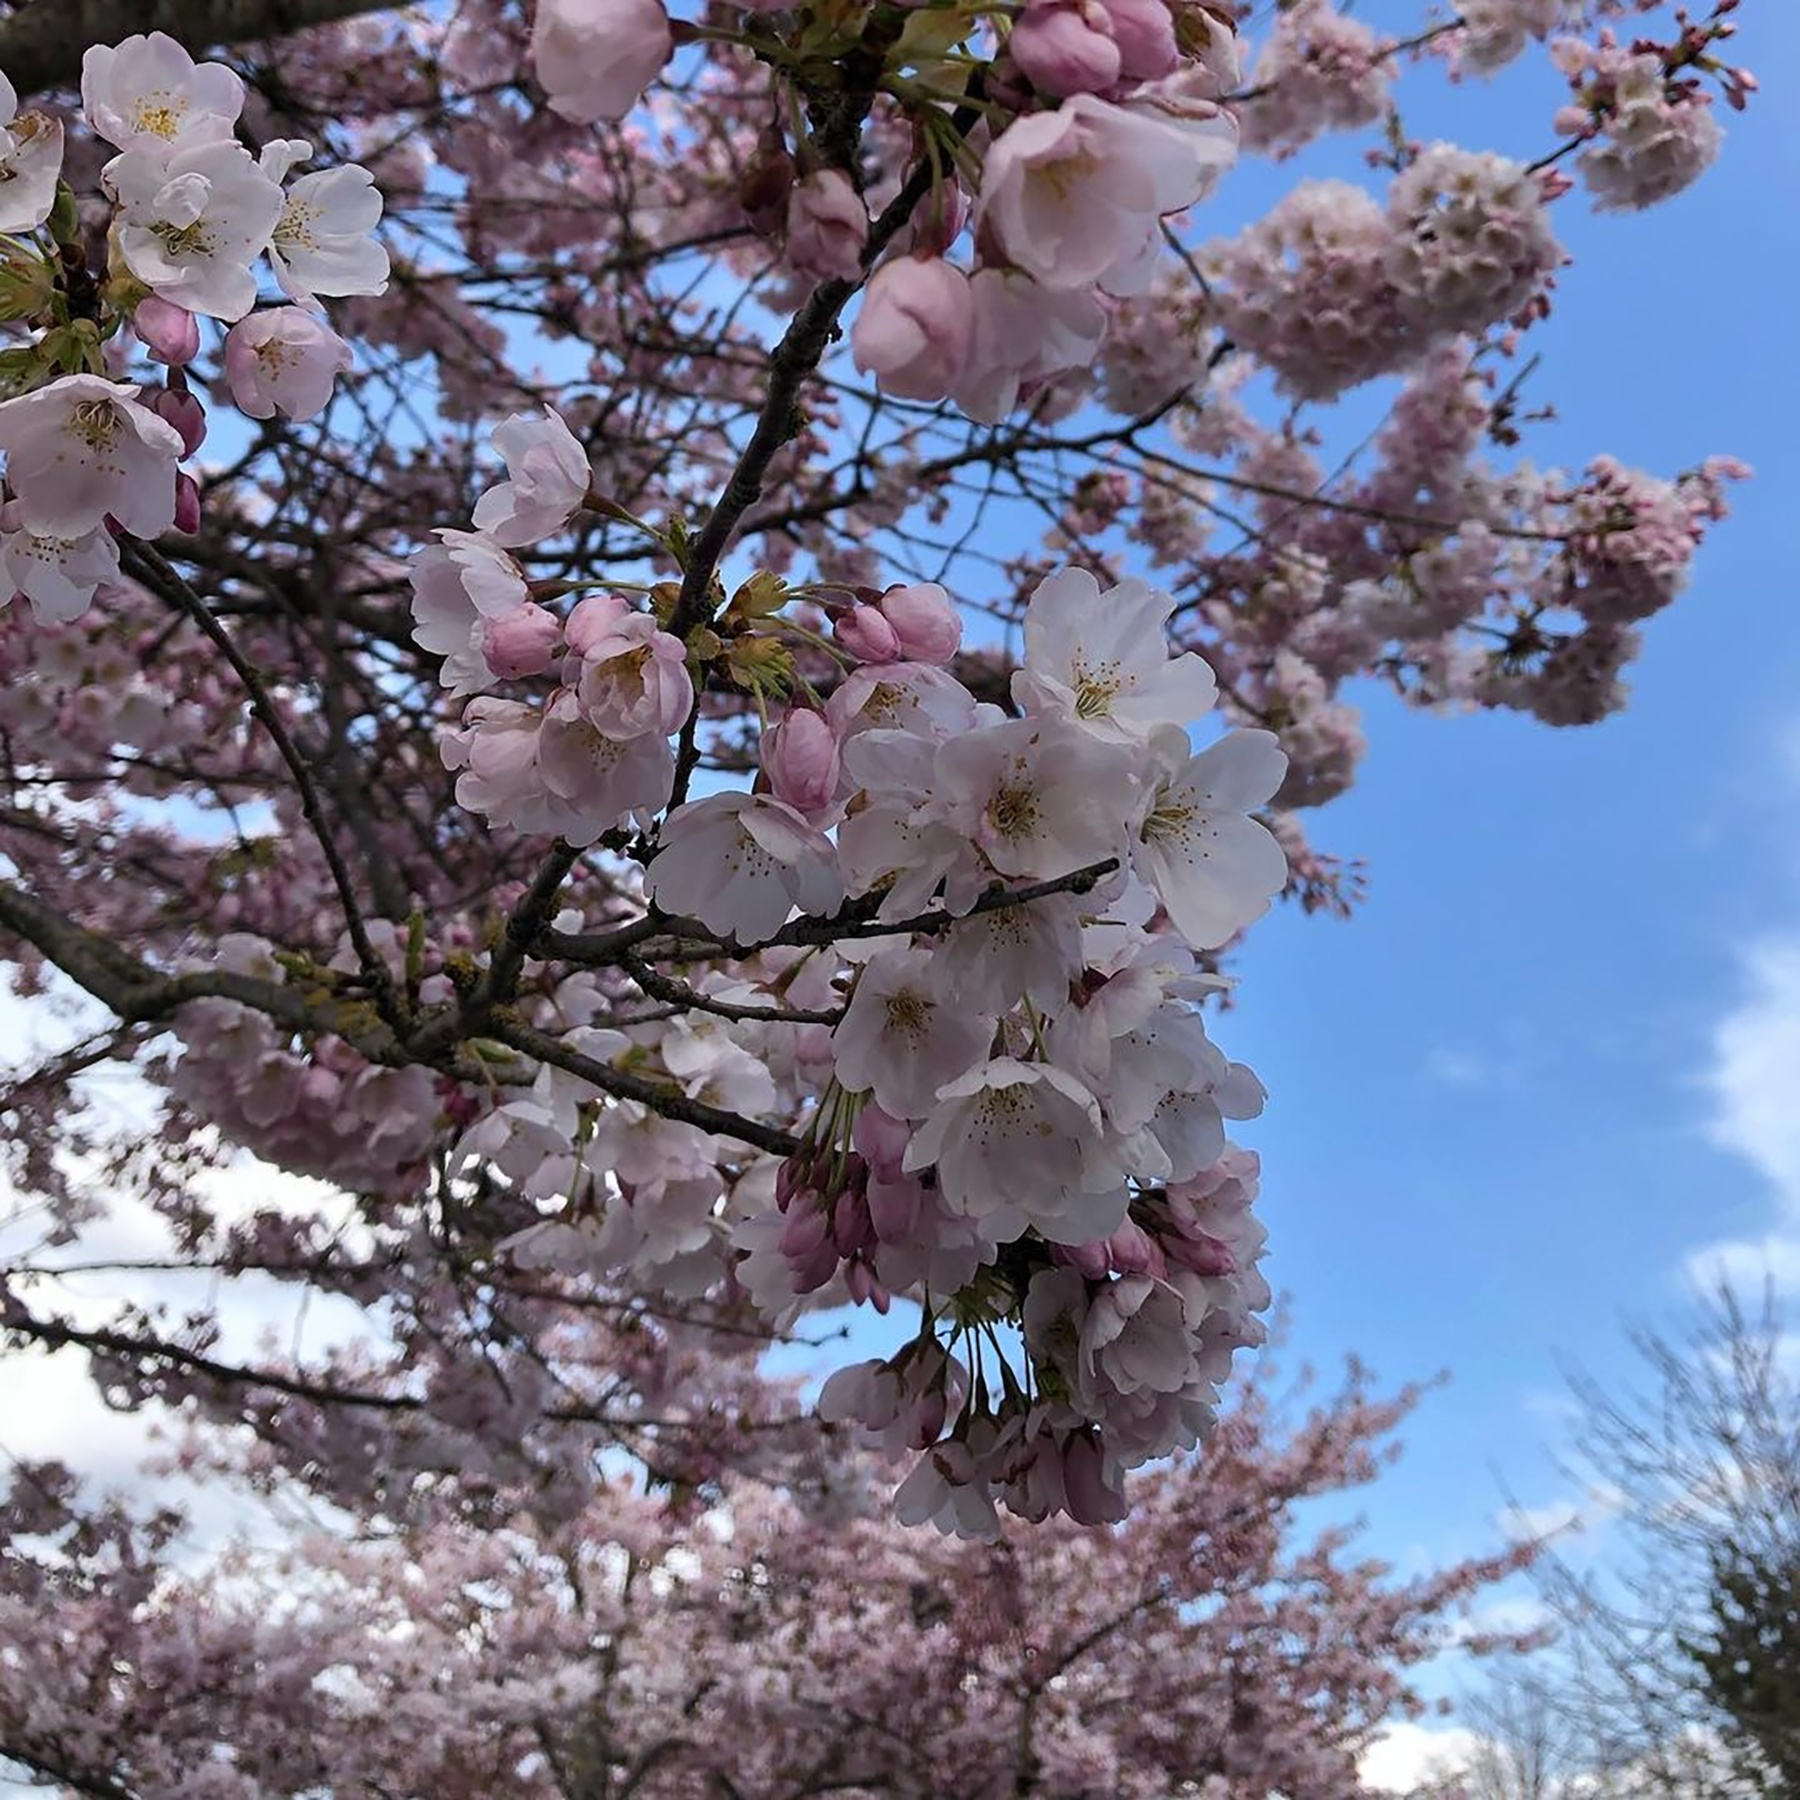 Photo of cherry blossoms blooming against a blue sky.